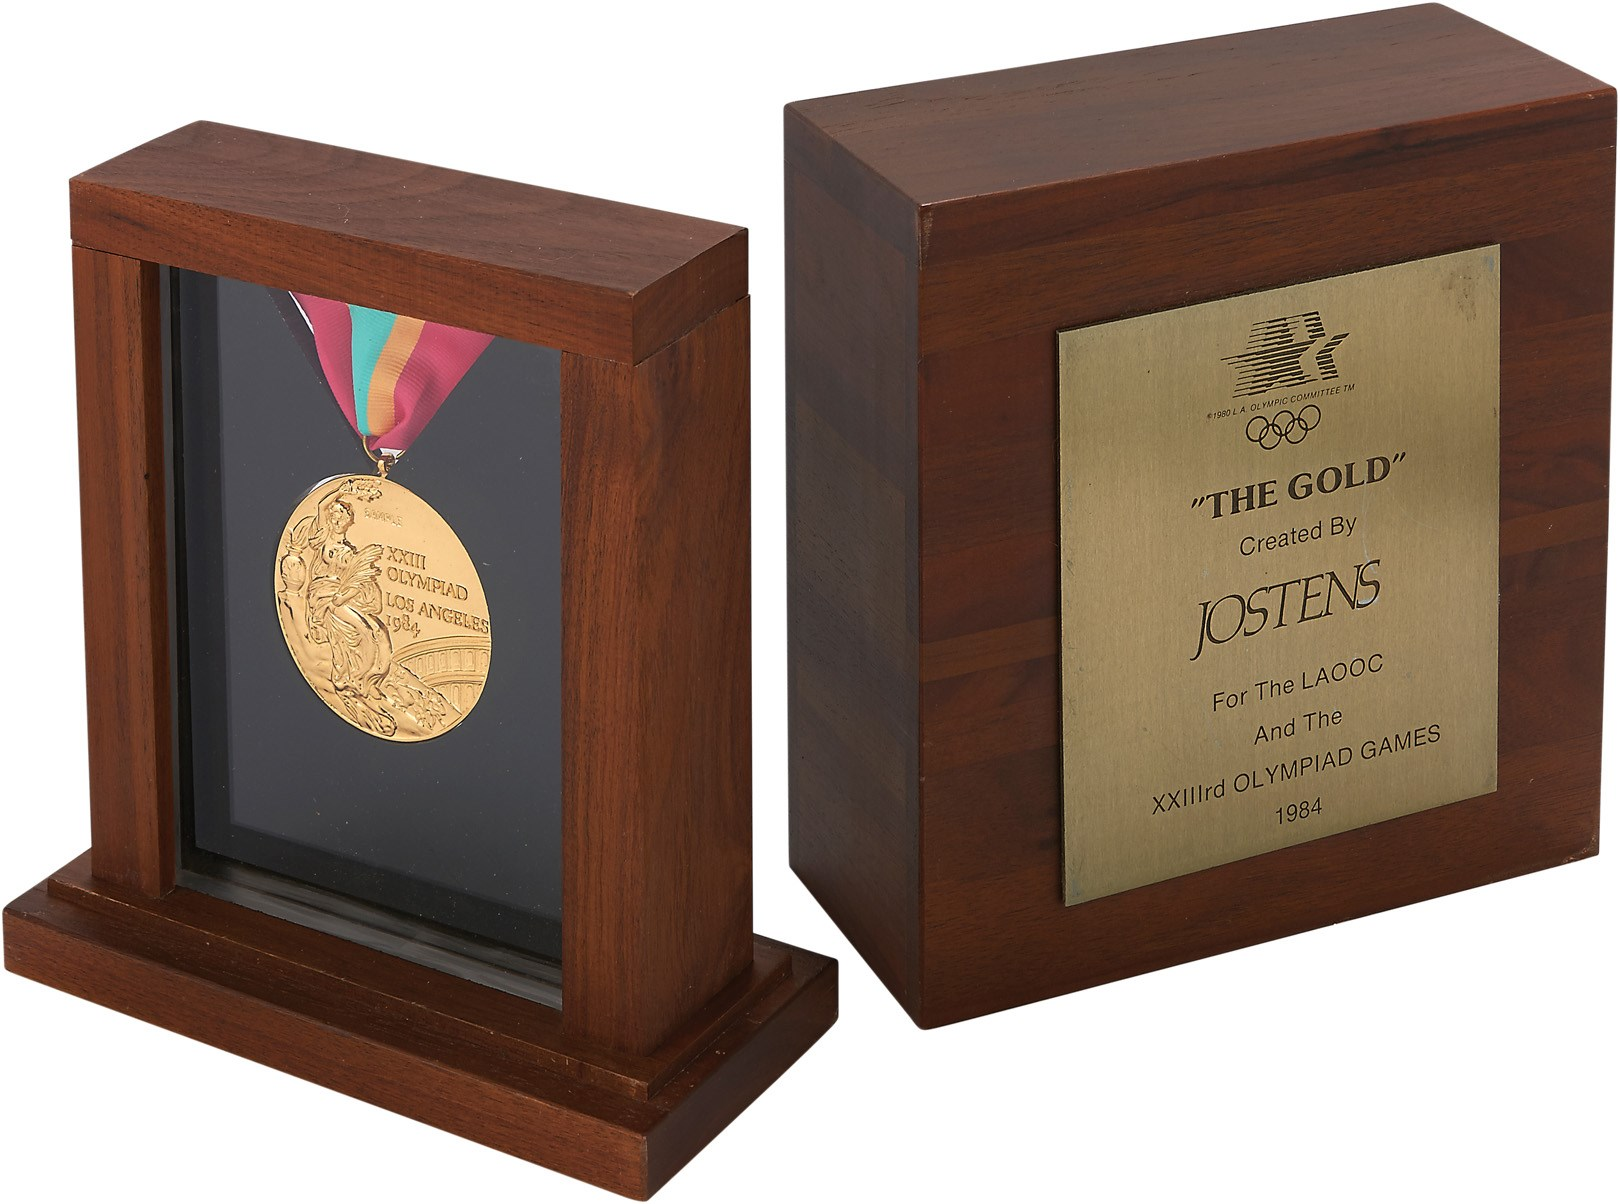 1984 Los Angeles Summer Olympics Gold Medal in Jostens Presentational Box